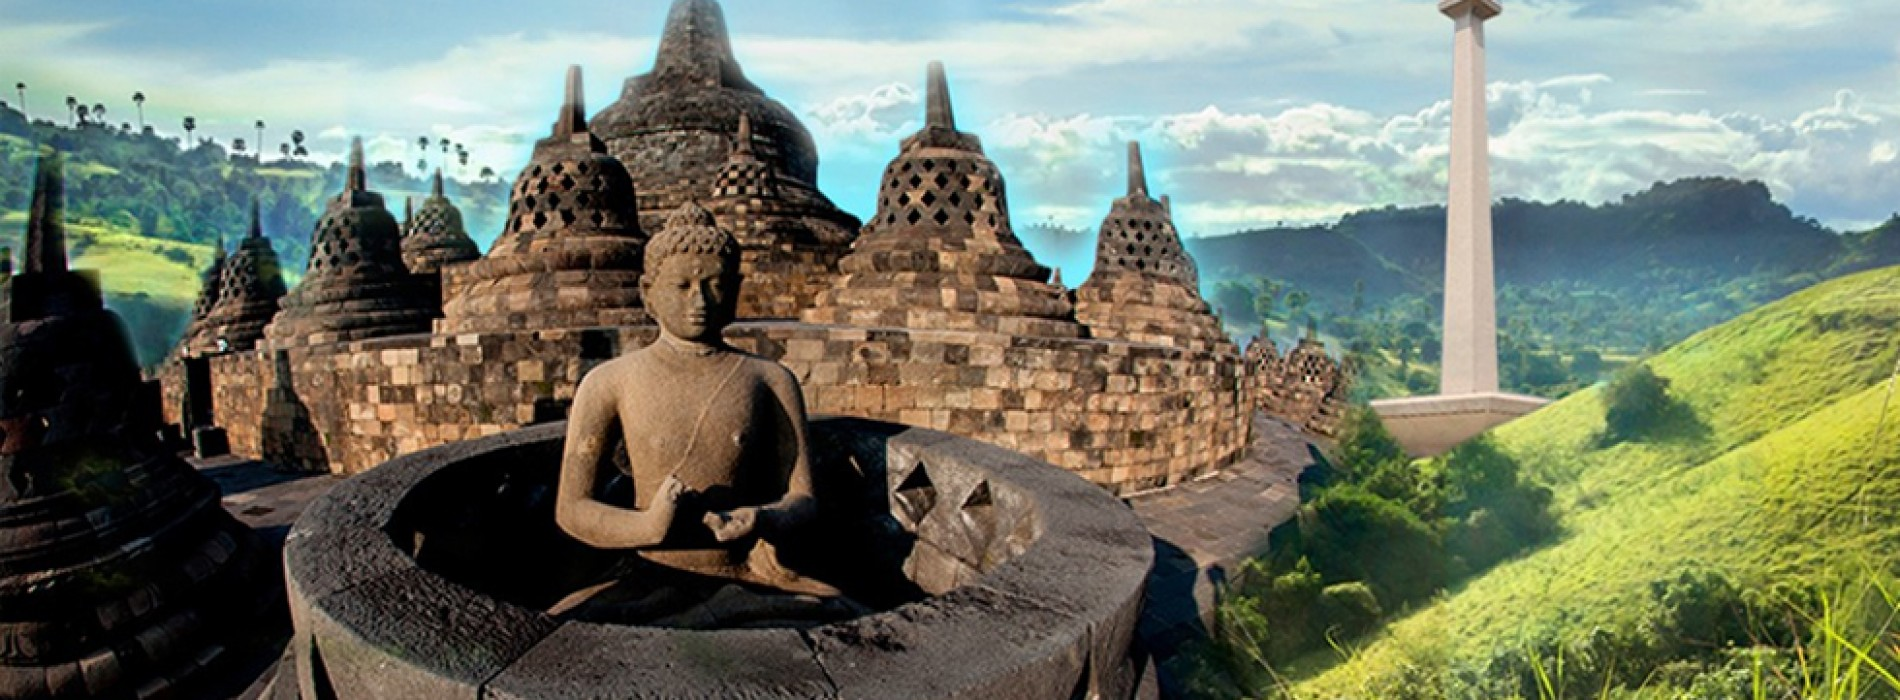 Indonesia eyes India to further boost tourism sector